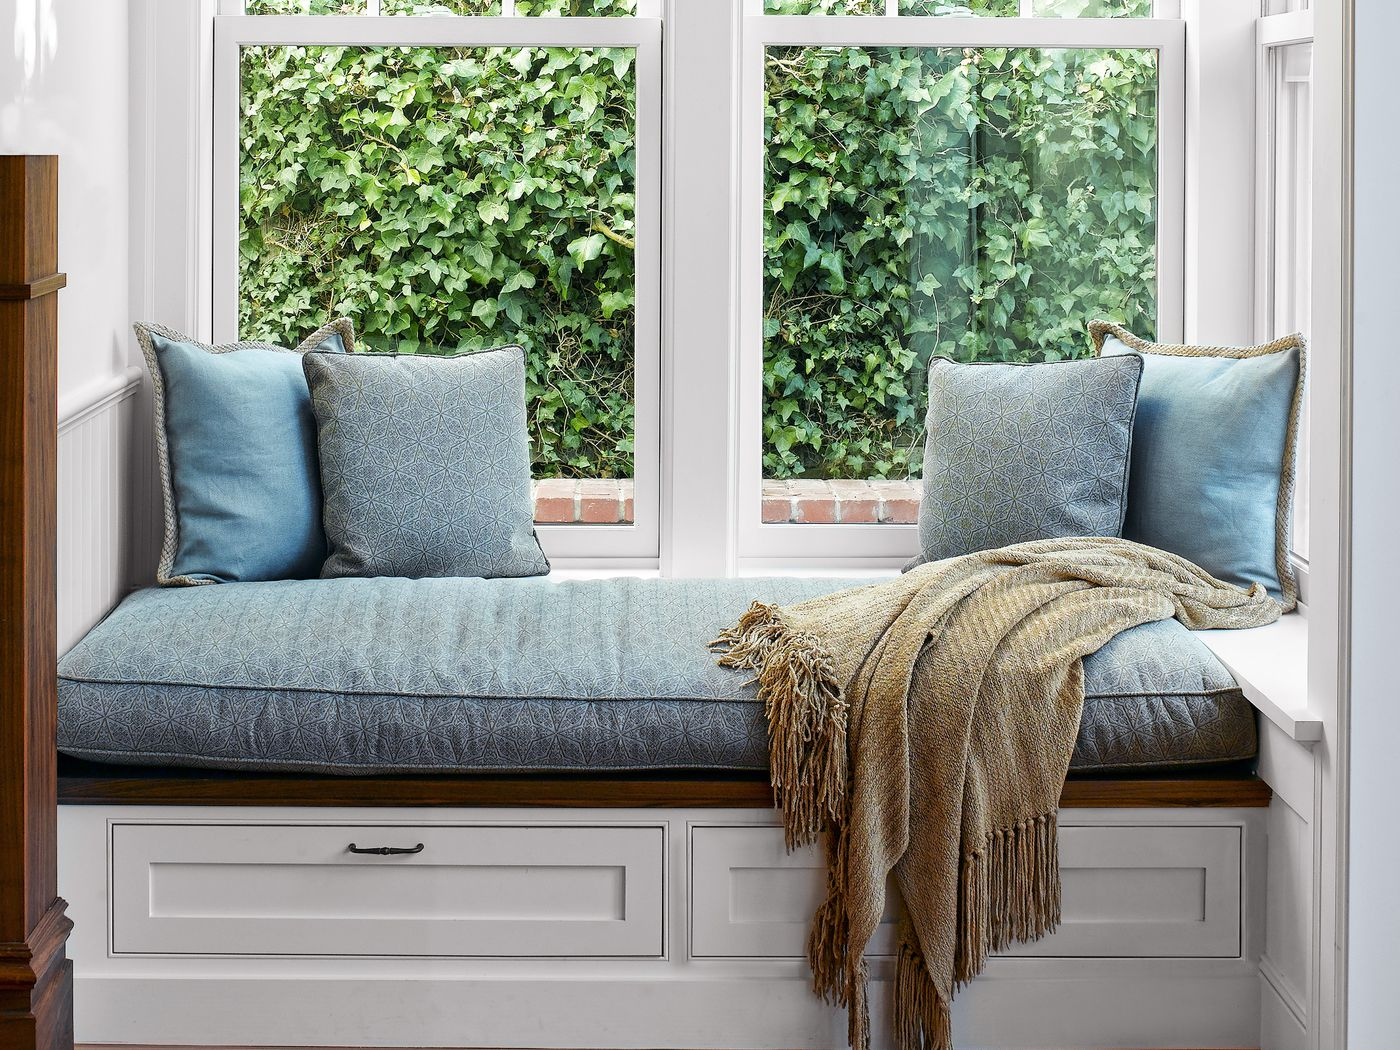 Picture of: All About Window Seats This Old House